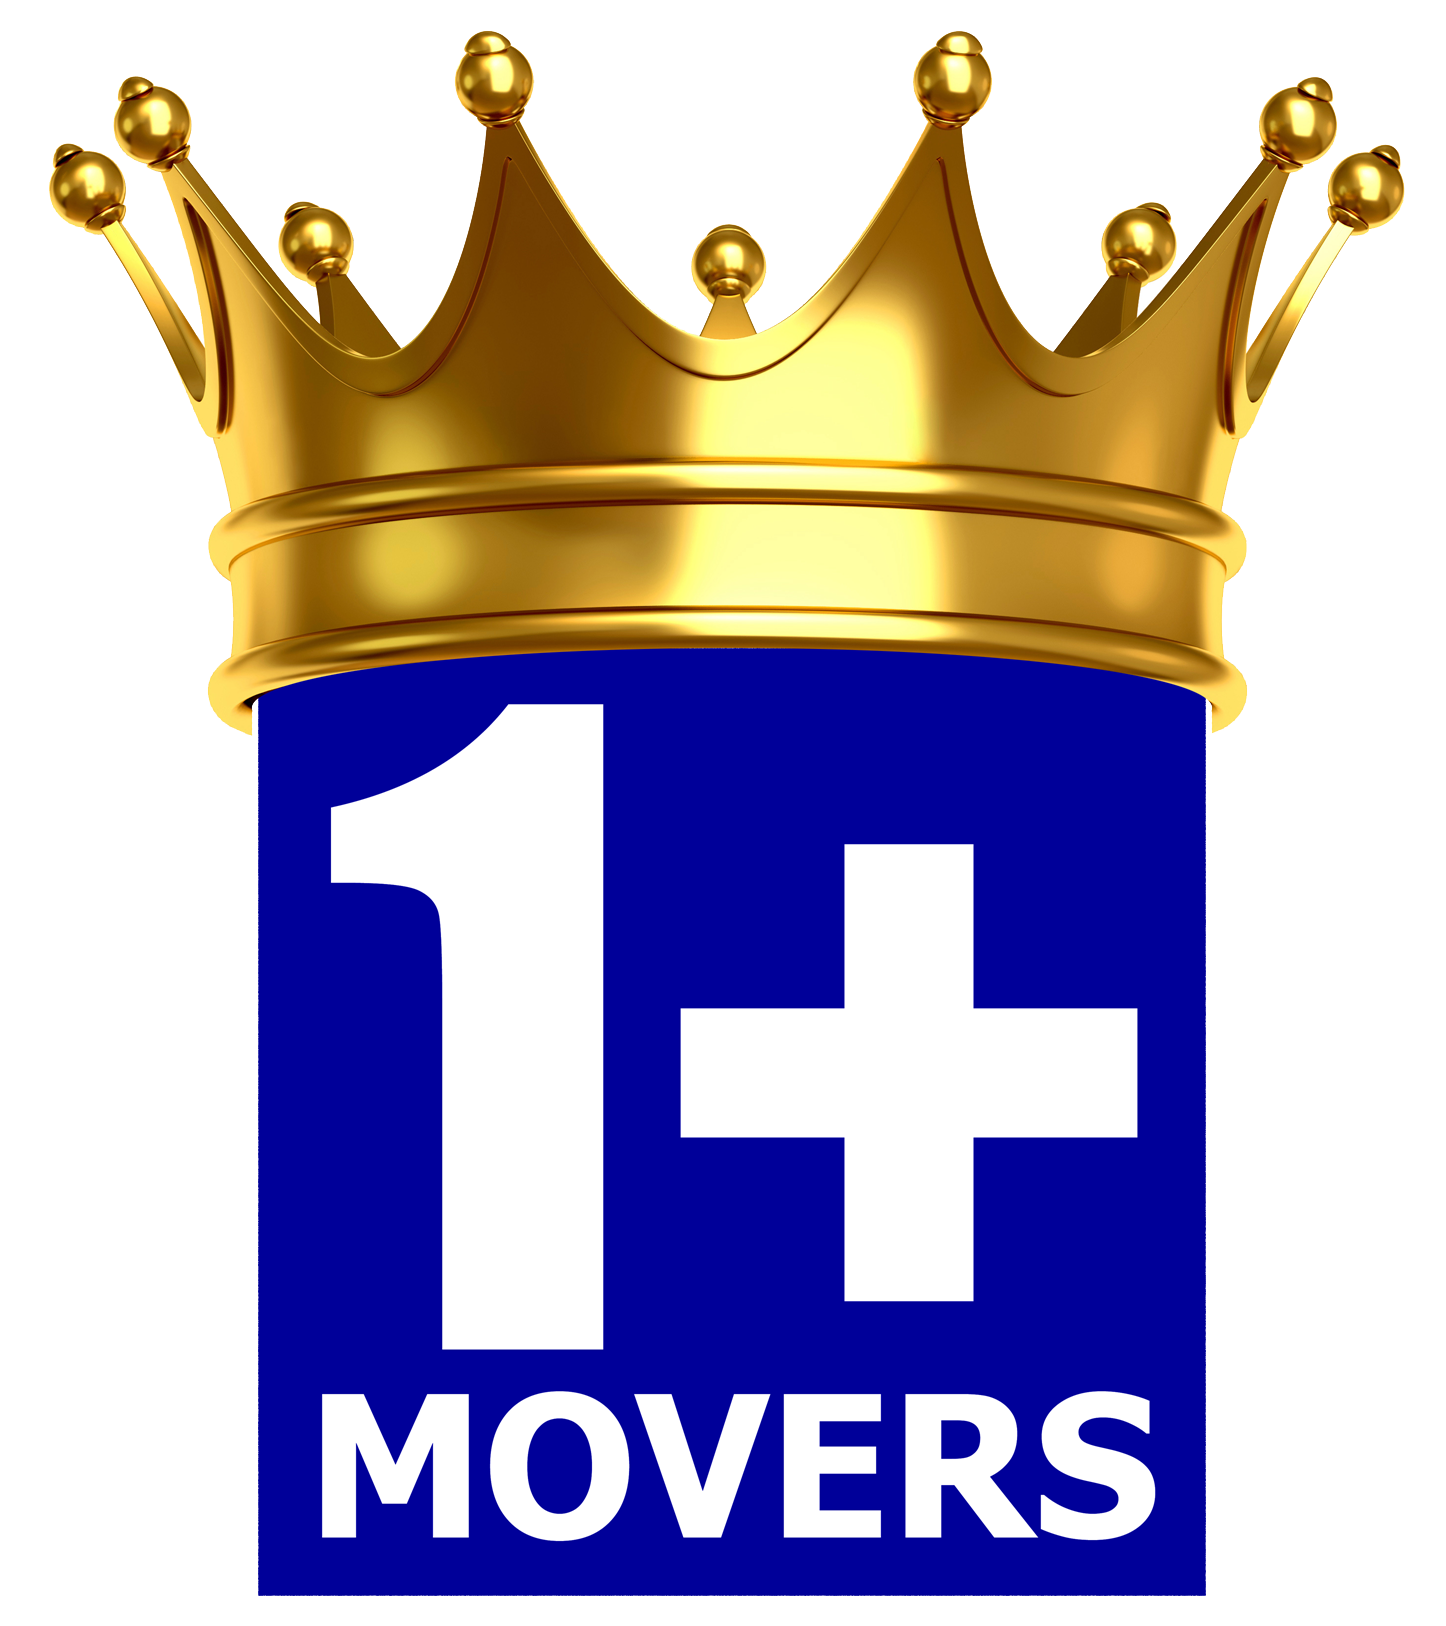 1+MOVERS Moving Company Logo